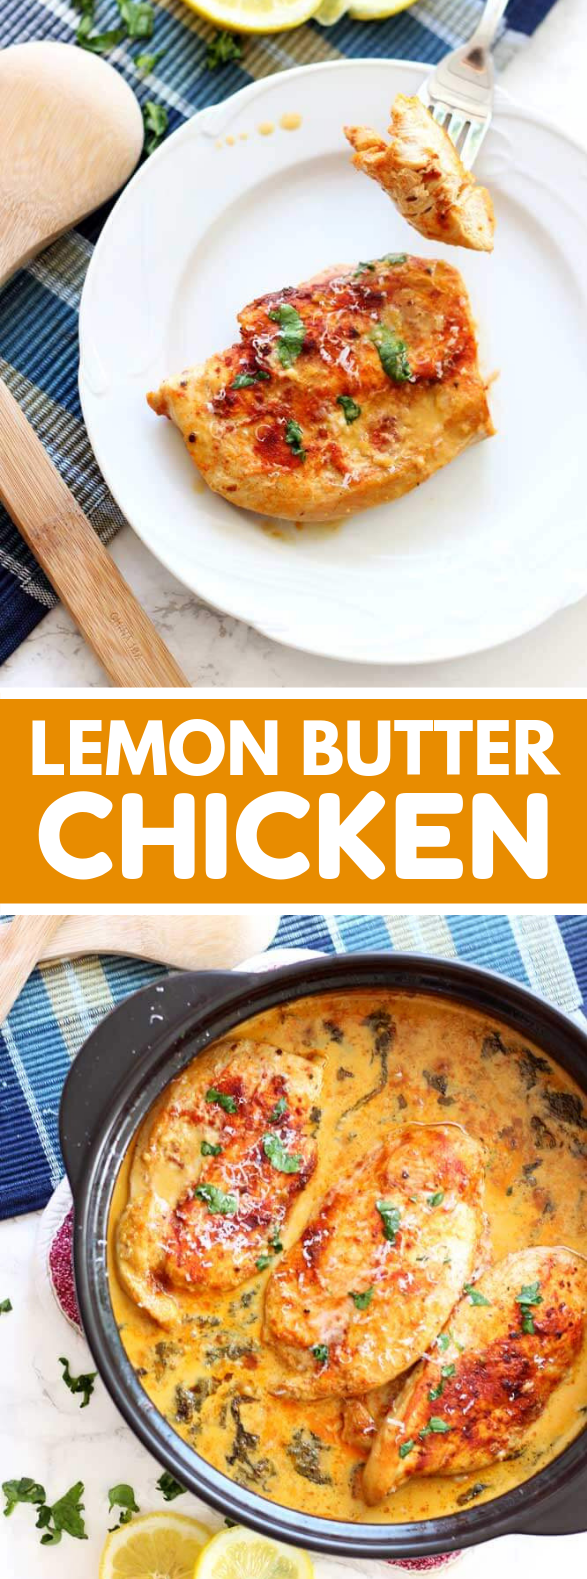 Lemon Butter Chicken #dinner #glutenfree